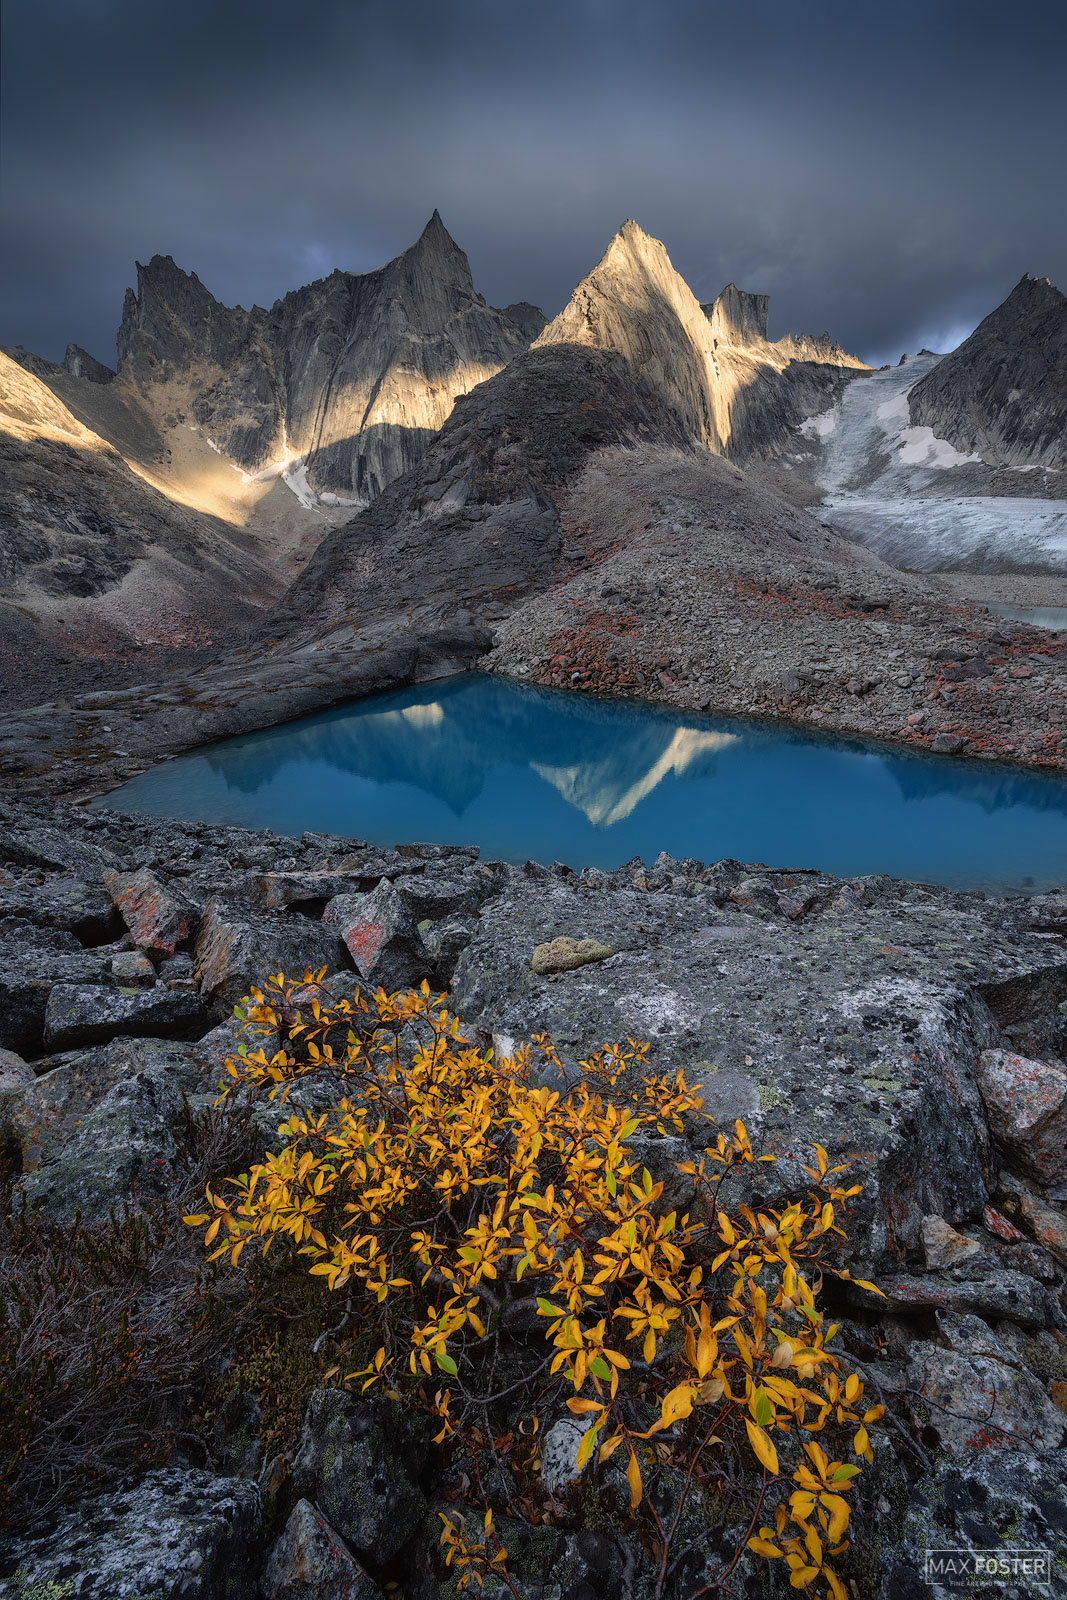 Fine Art Limited Edition of 50 The Arrigetch Peaks are a cluster of rugged granite spires in the Endicott Mountains of the central...